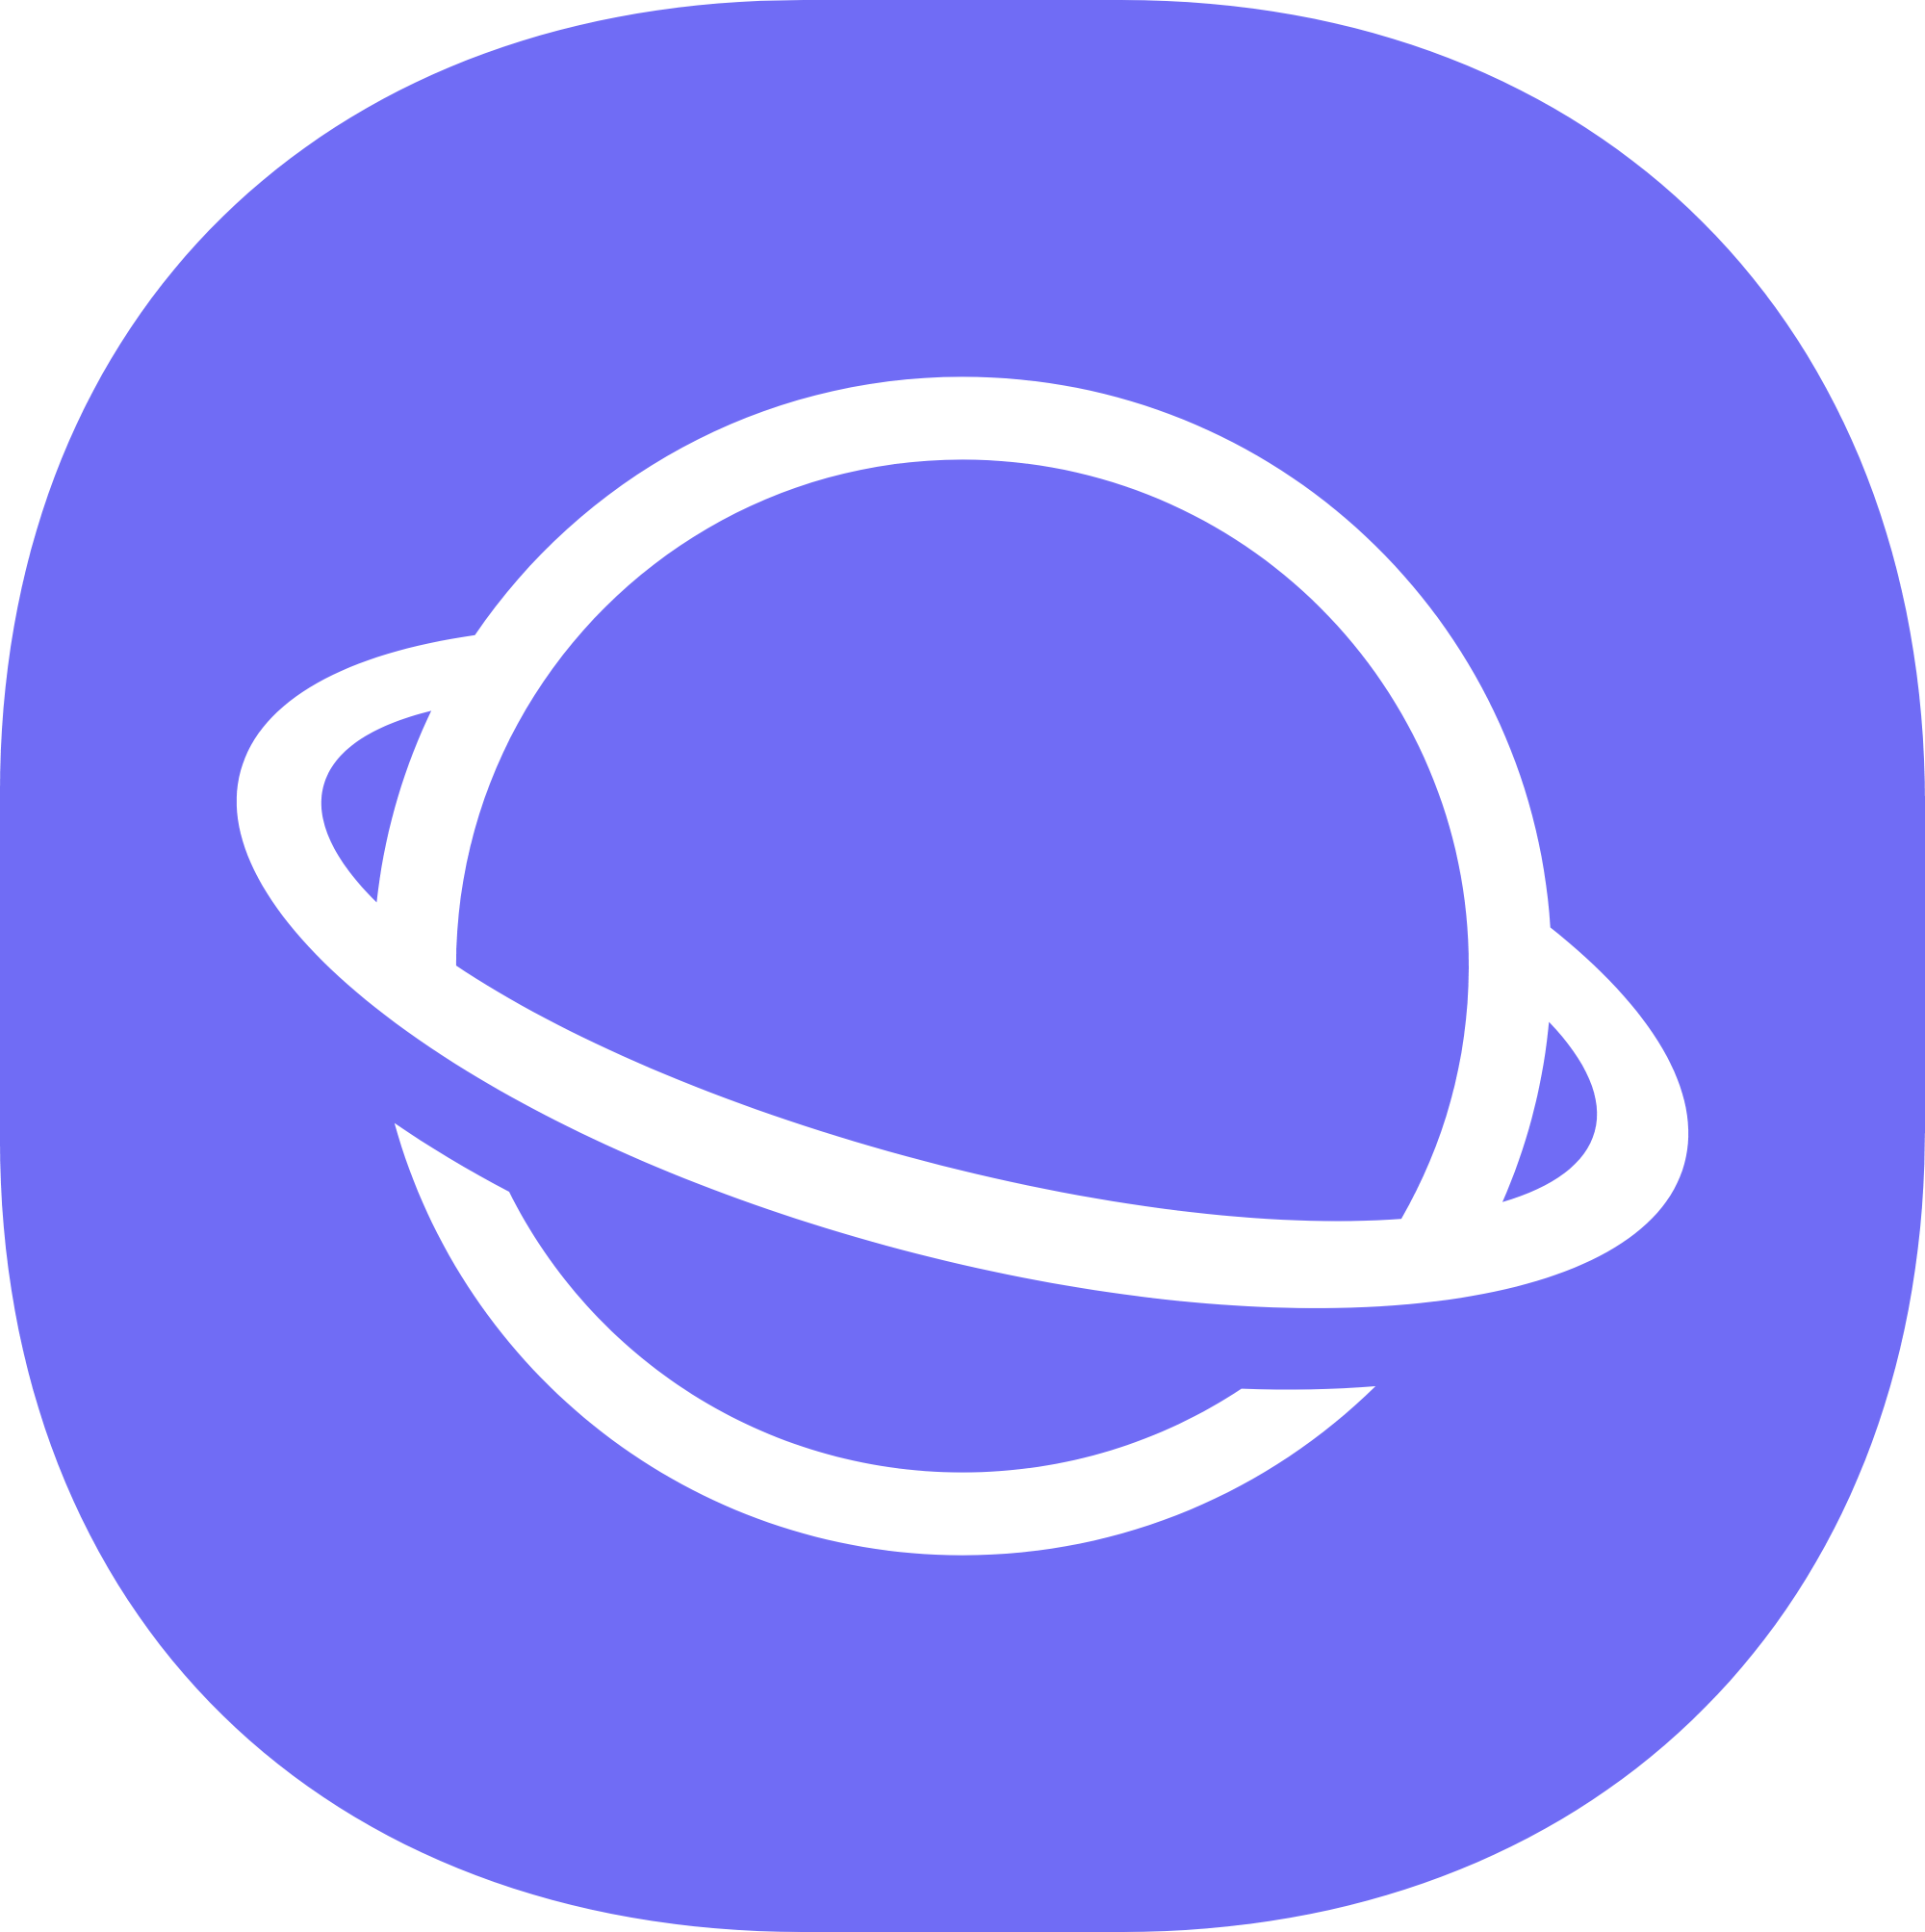 Internet logo png. File samsung wikimedia commons